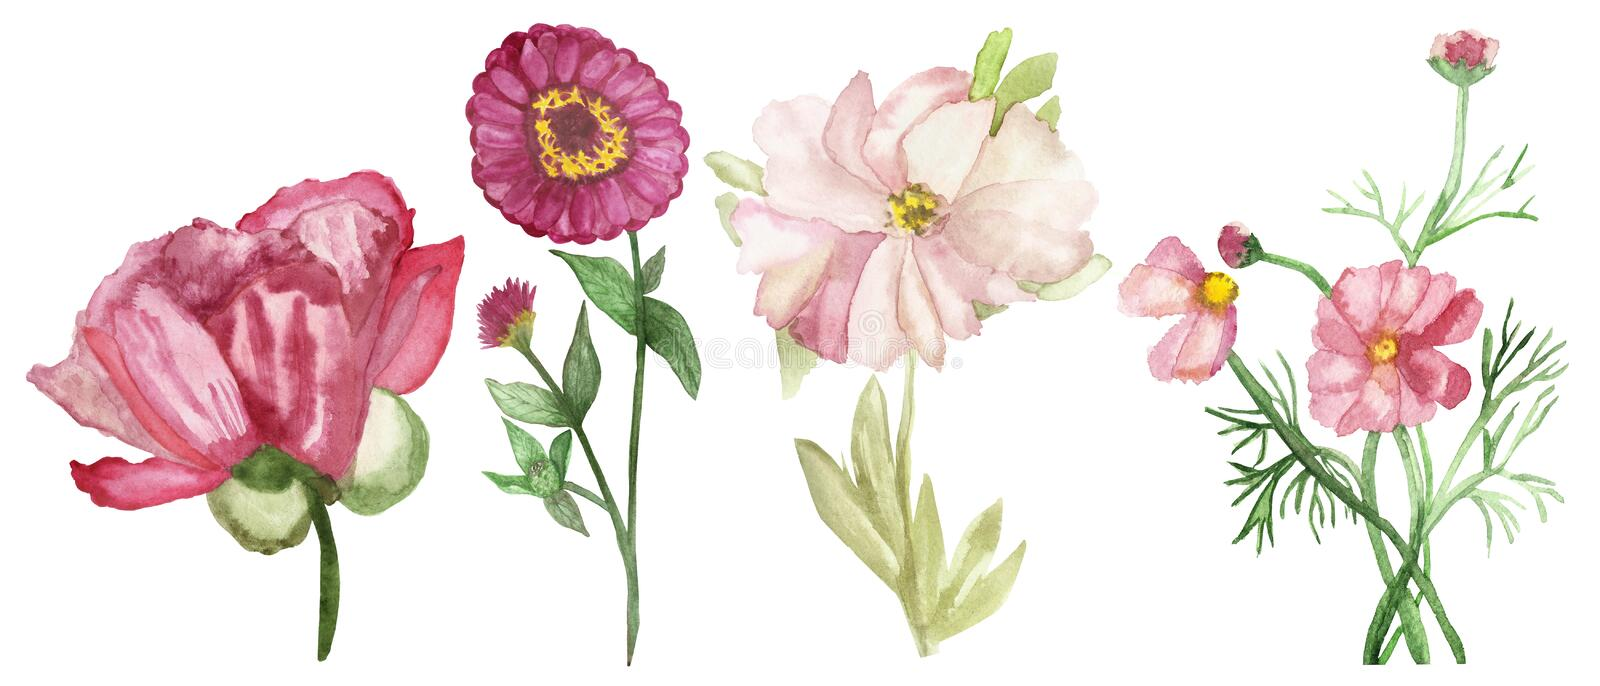 Watercolor hand painted nature romantic floral set composition with different four pion, zinnia and loach flowers stock illustration